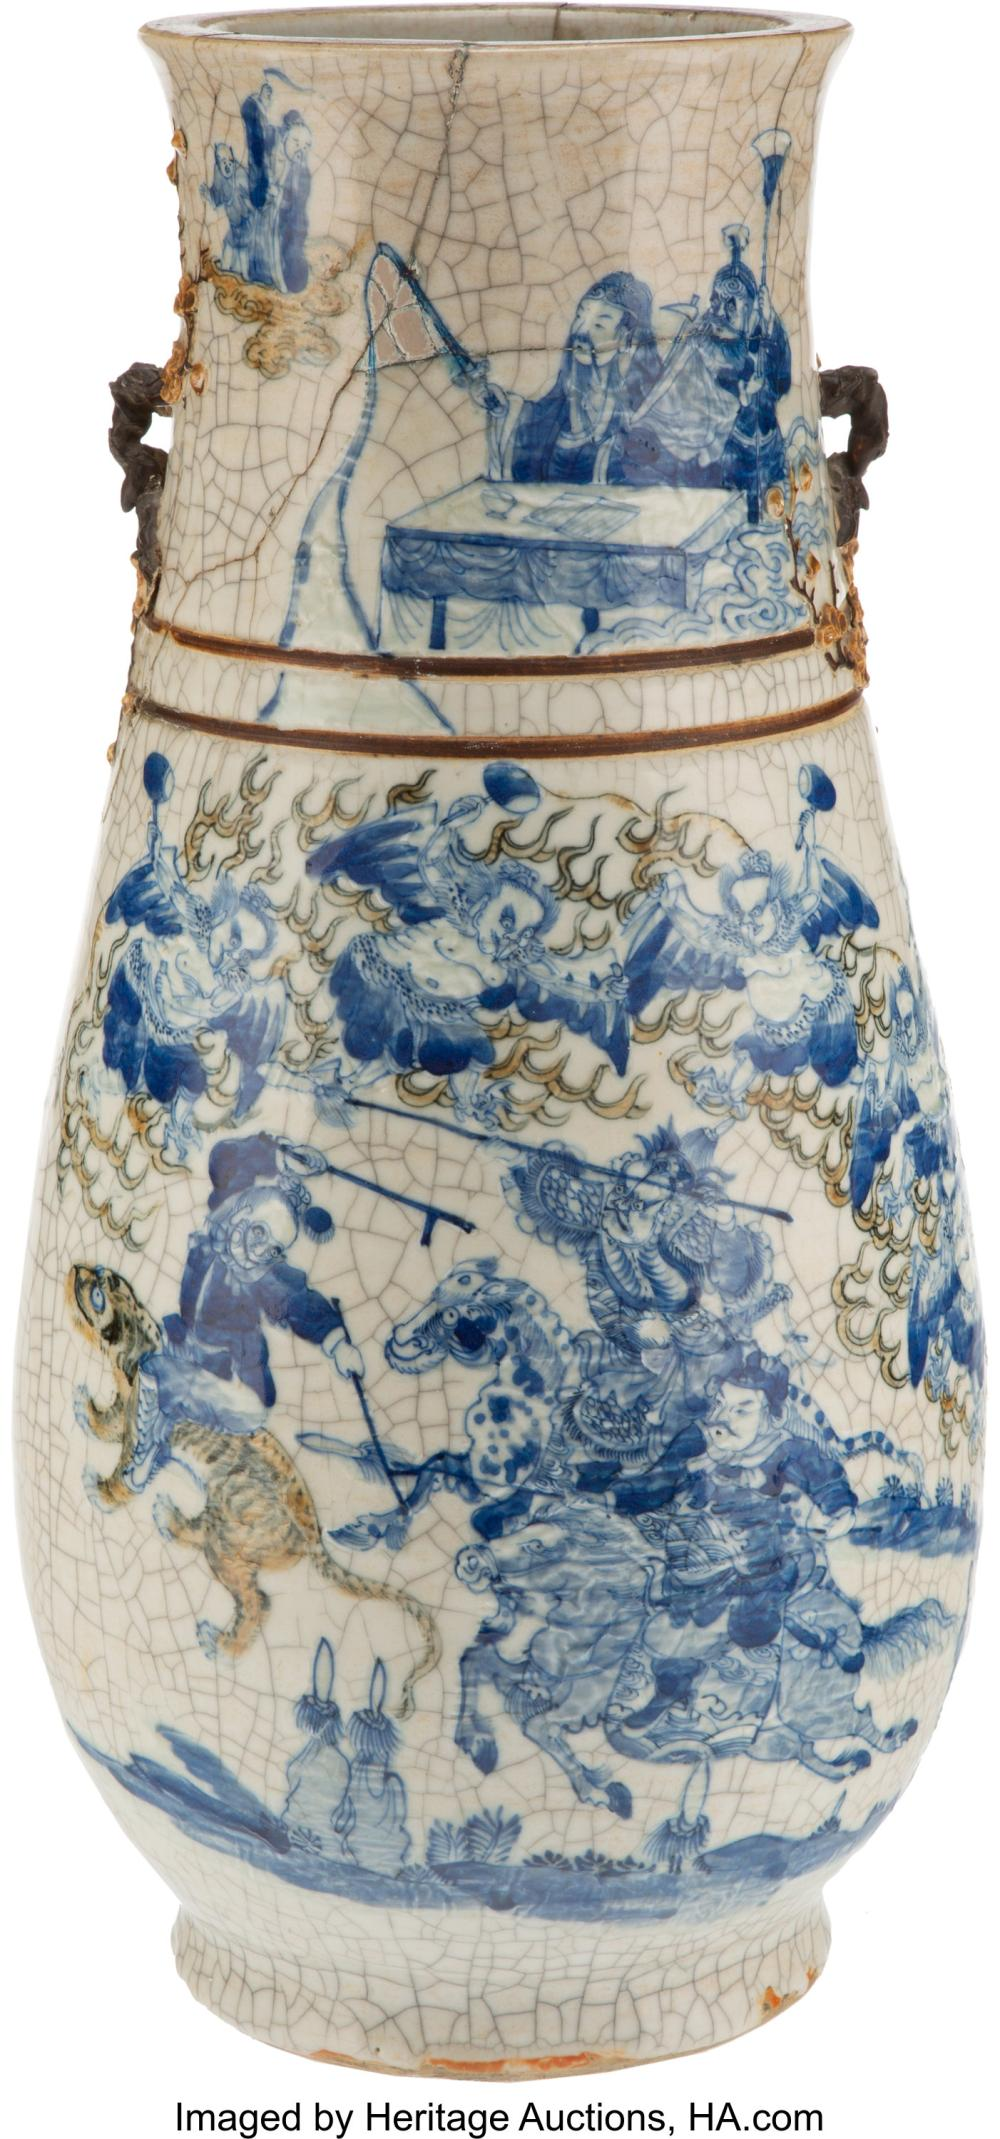 Lot 21298: A Chinese Blue and White Crackle Porcelain Vase, early Republic Period Marks: br